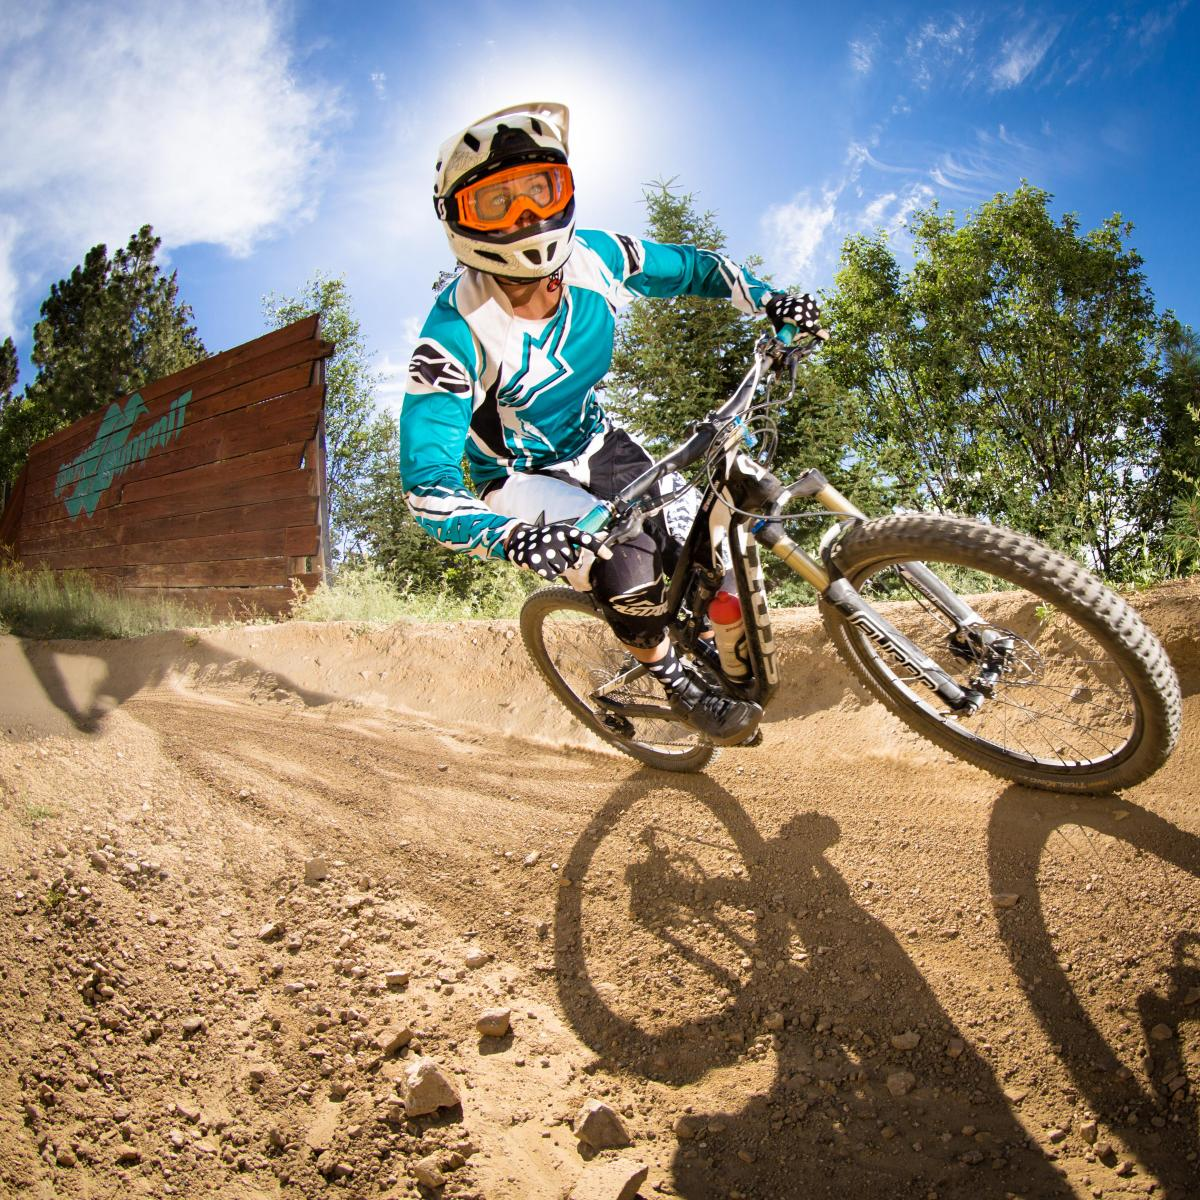 Getting the shred on at the Snow Summit Bike Park. Photo courtesy of Snow Summit Mountain Resort